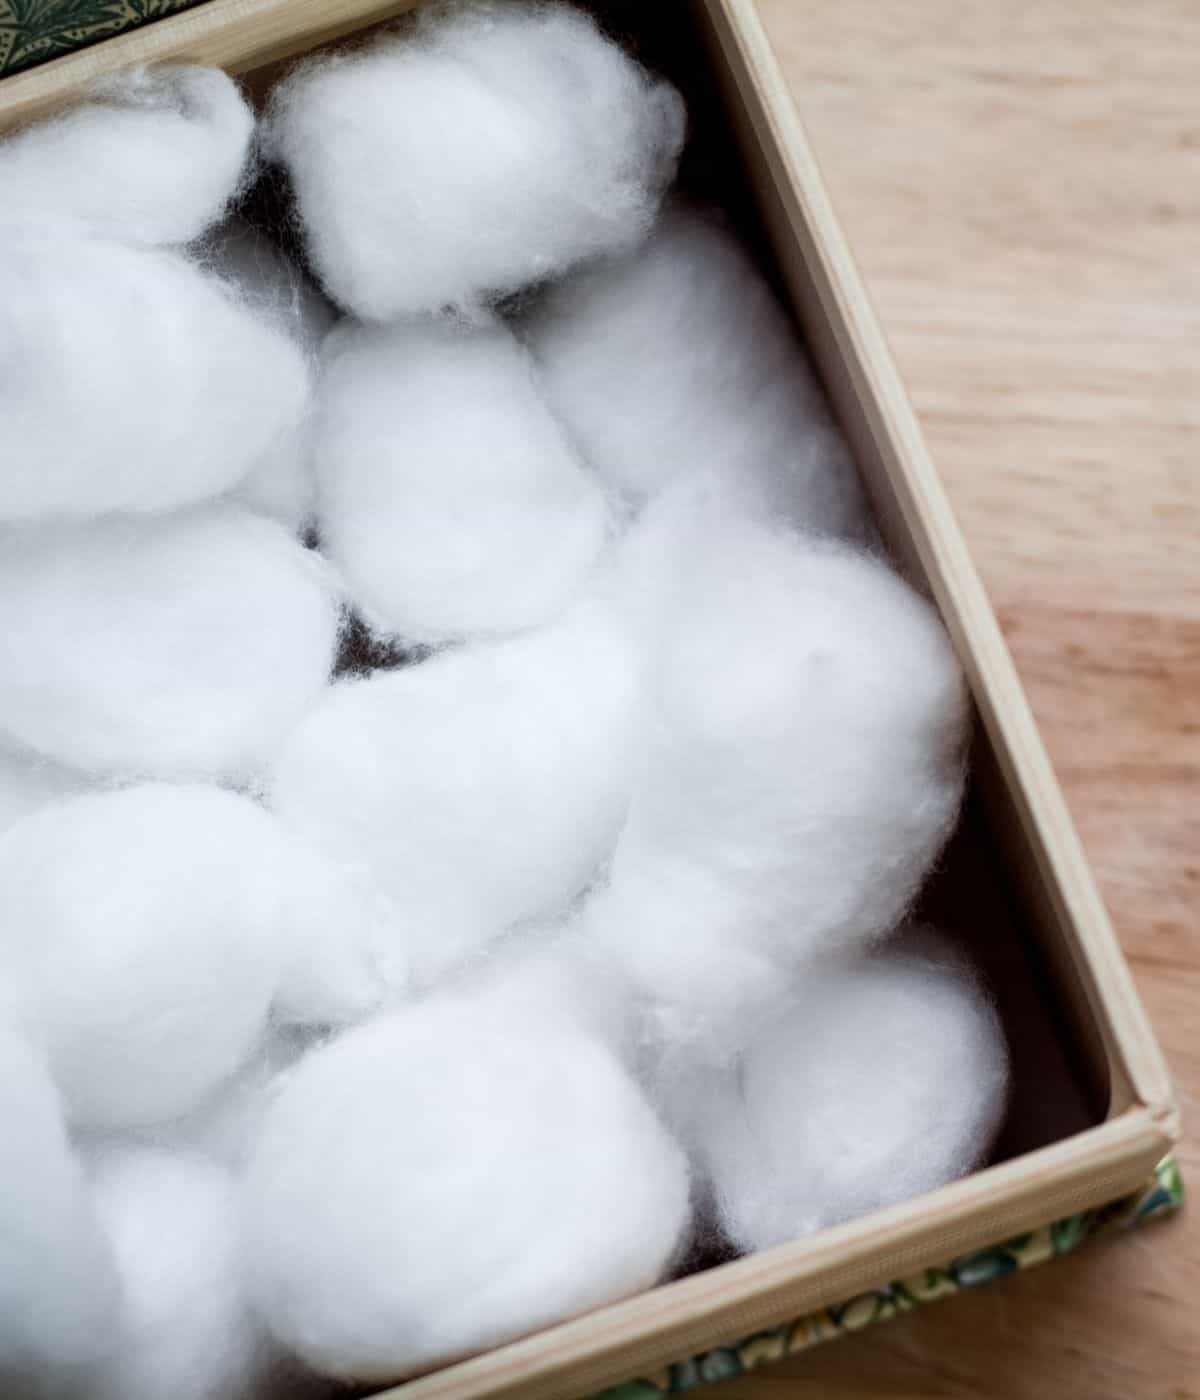 Cotton balls in container ready to diffuse.